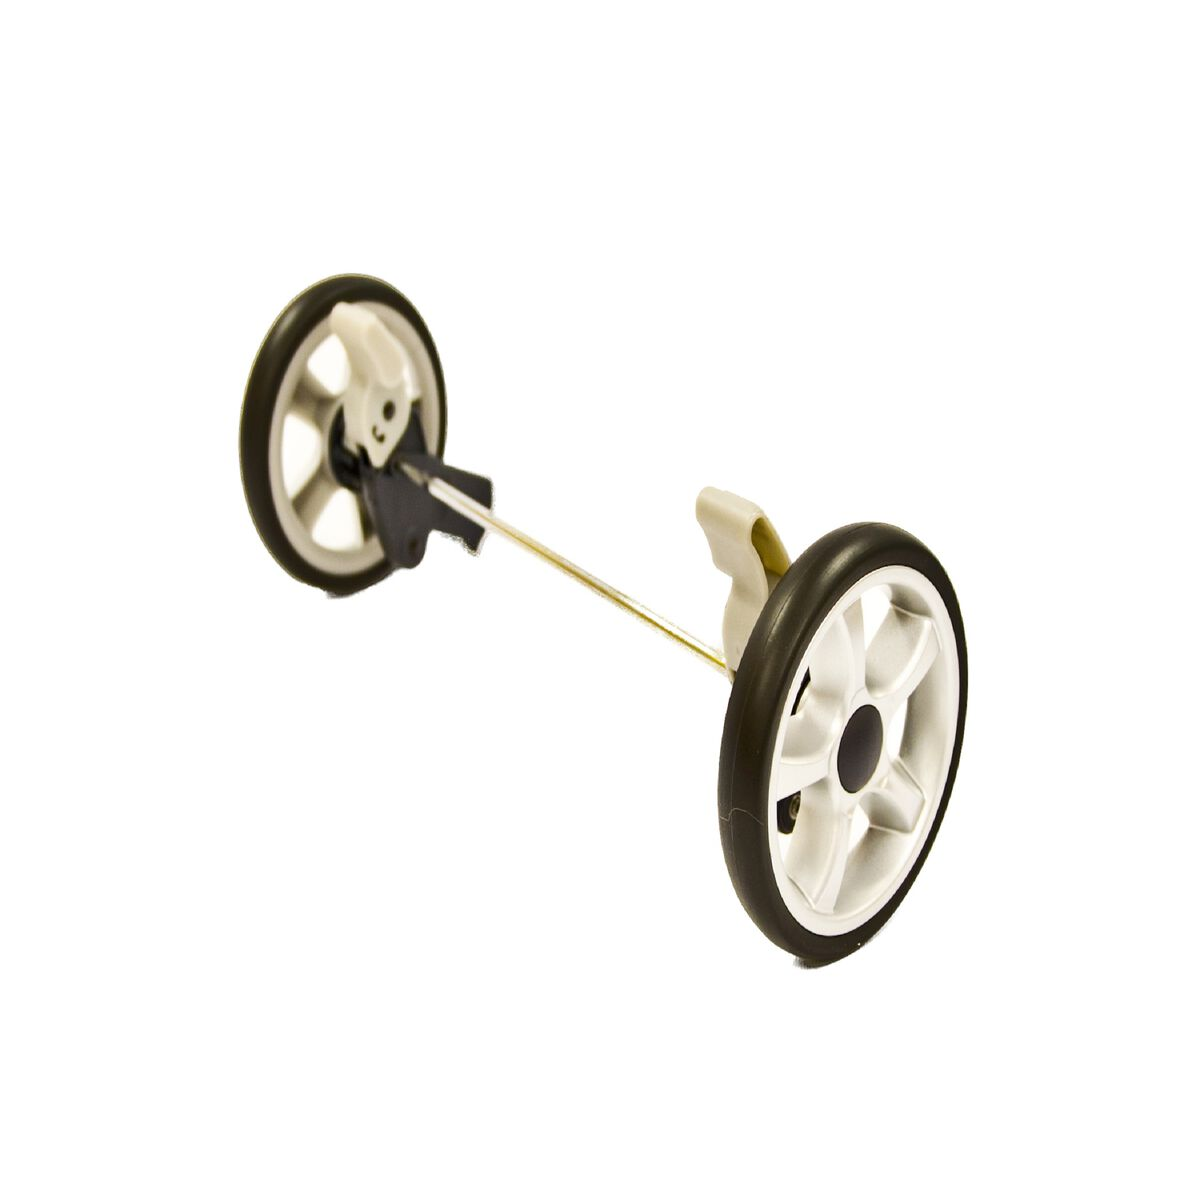 Chicco | KeyFit or KeyFit30 Caddy Rear Wheel & Brake Assembly